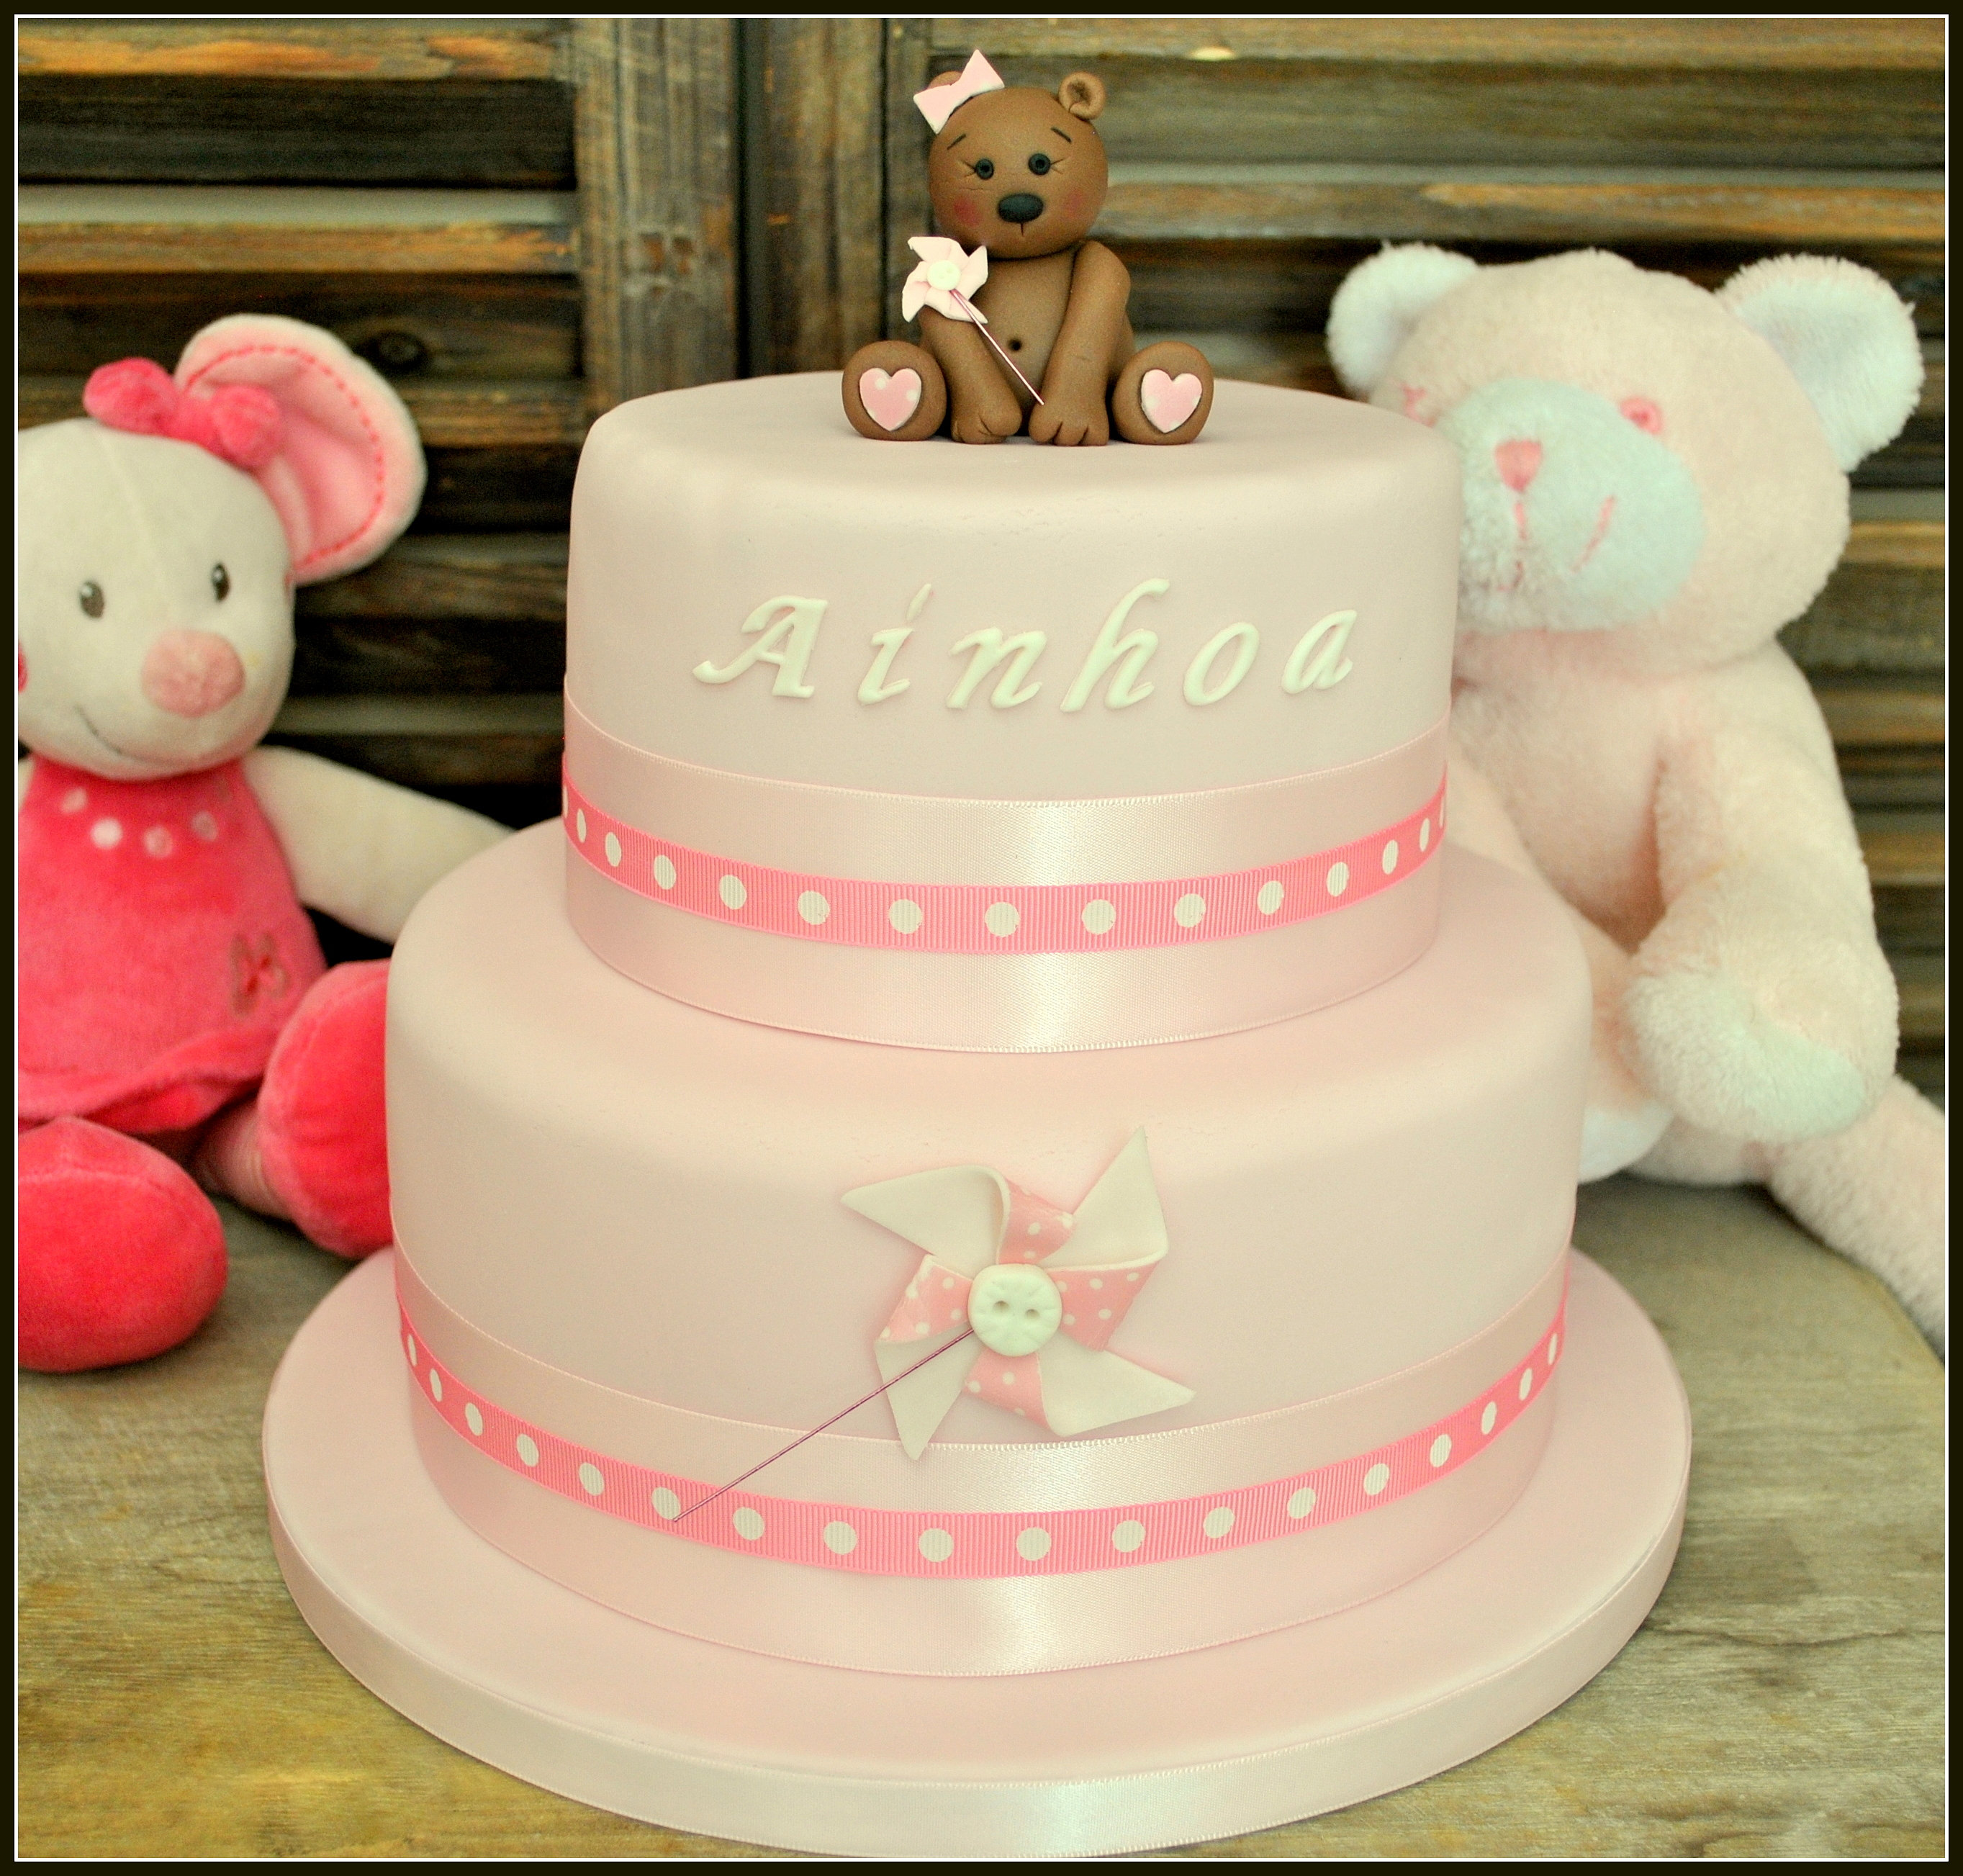 Cake Design Toulouse : Cake Design - Toulouse Gateau ourson mignon